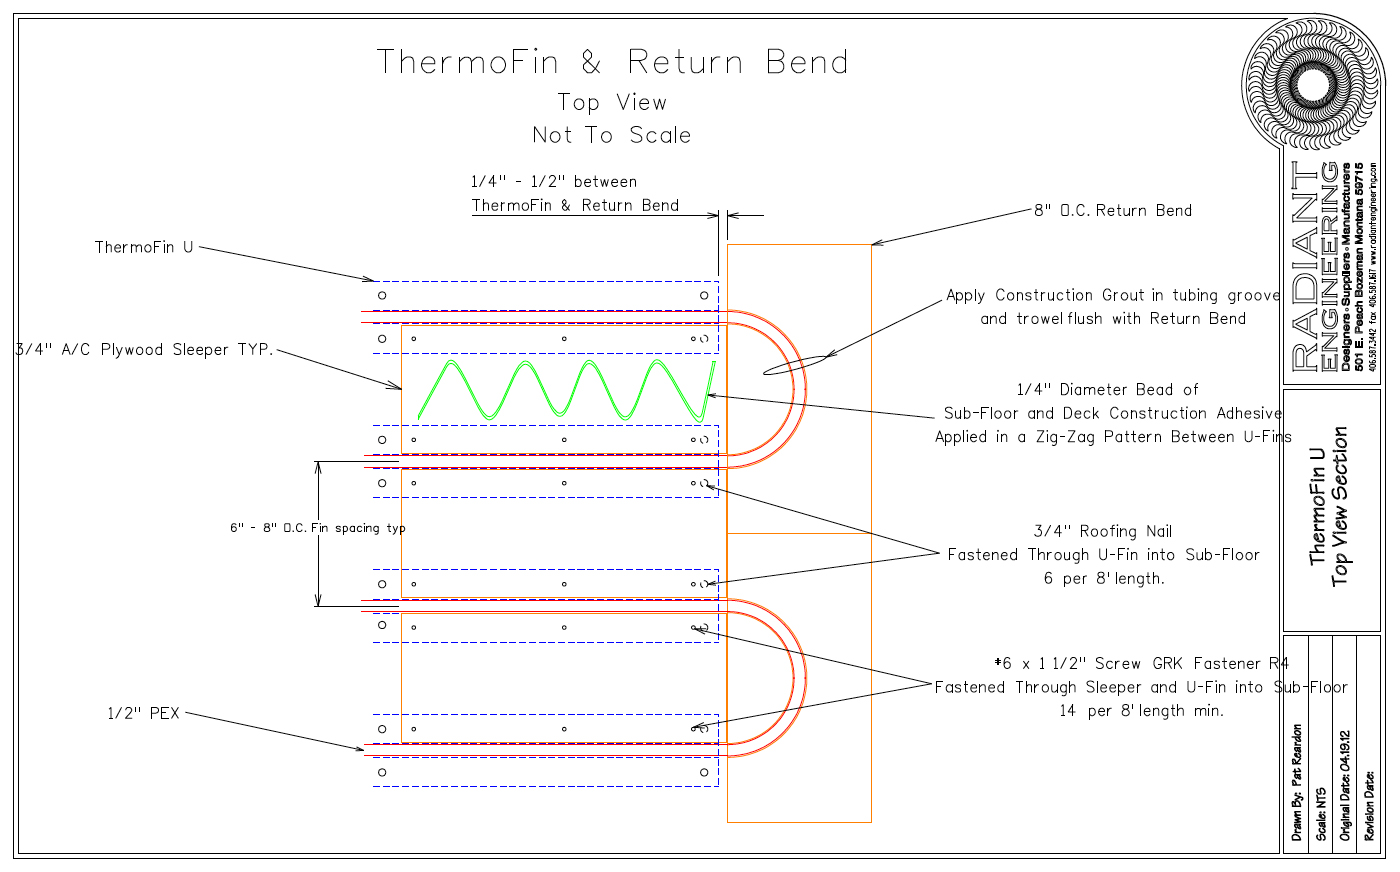 ThermoFin U Installation Top View Instructions -  CLICK HERE to open PDF graphic .